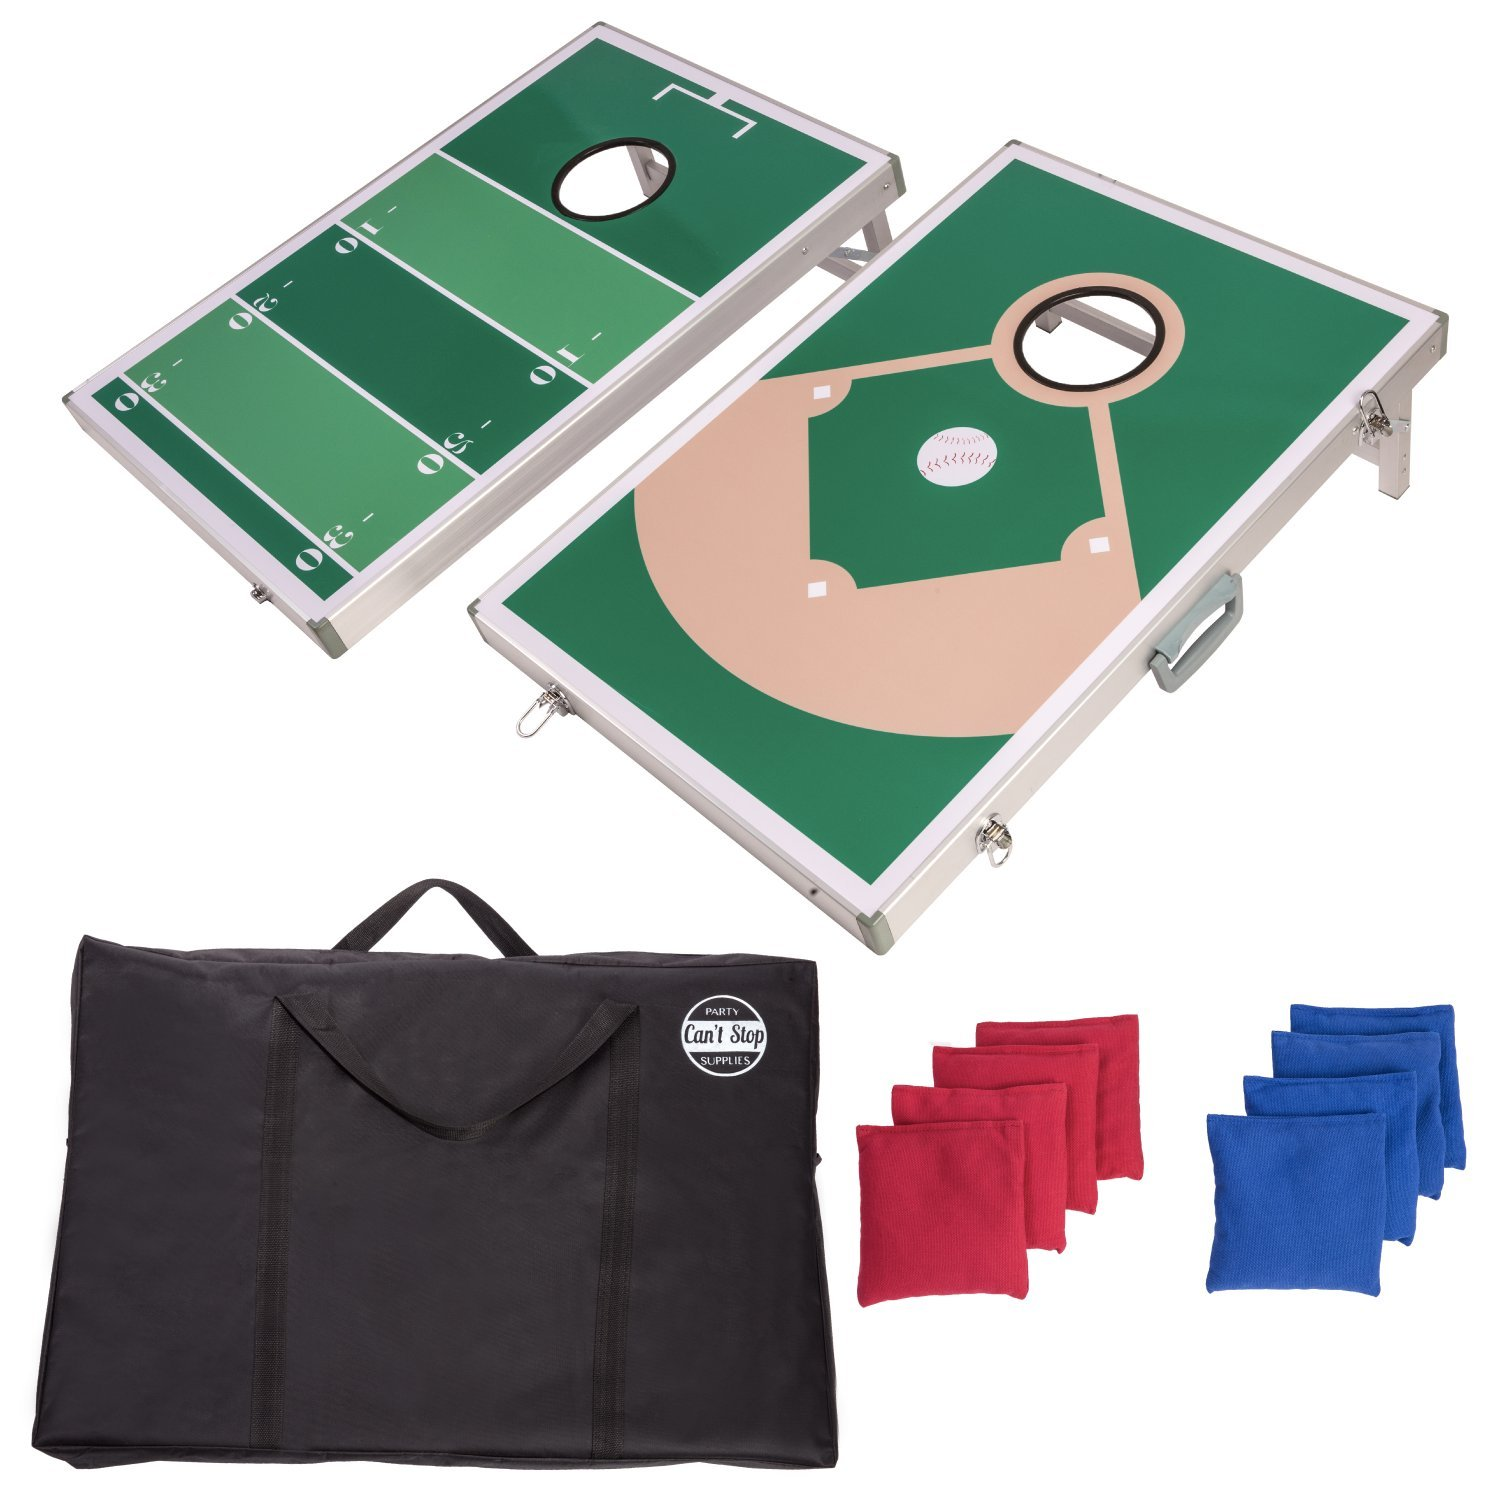 CAN'T STOP PARTY SUPPLIES Cornhole Board Game Set w/ 2 Boards and 8 Beanbags by CAN'T STOP PARTY SUPPLIES